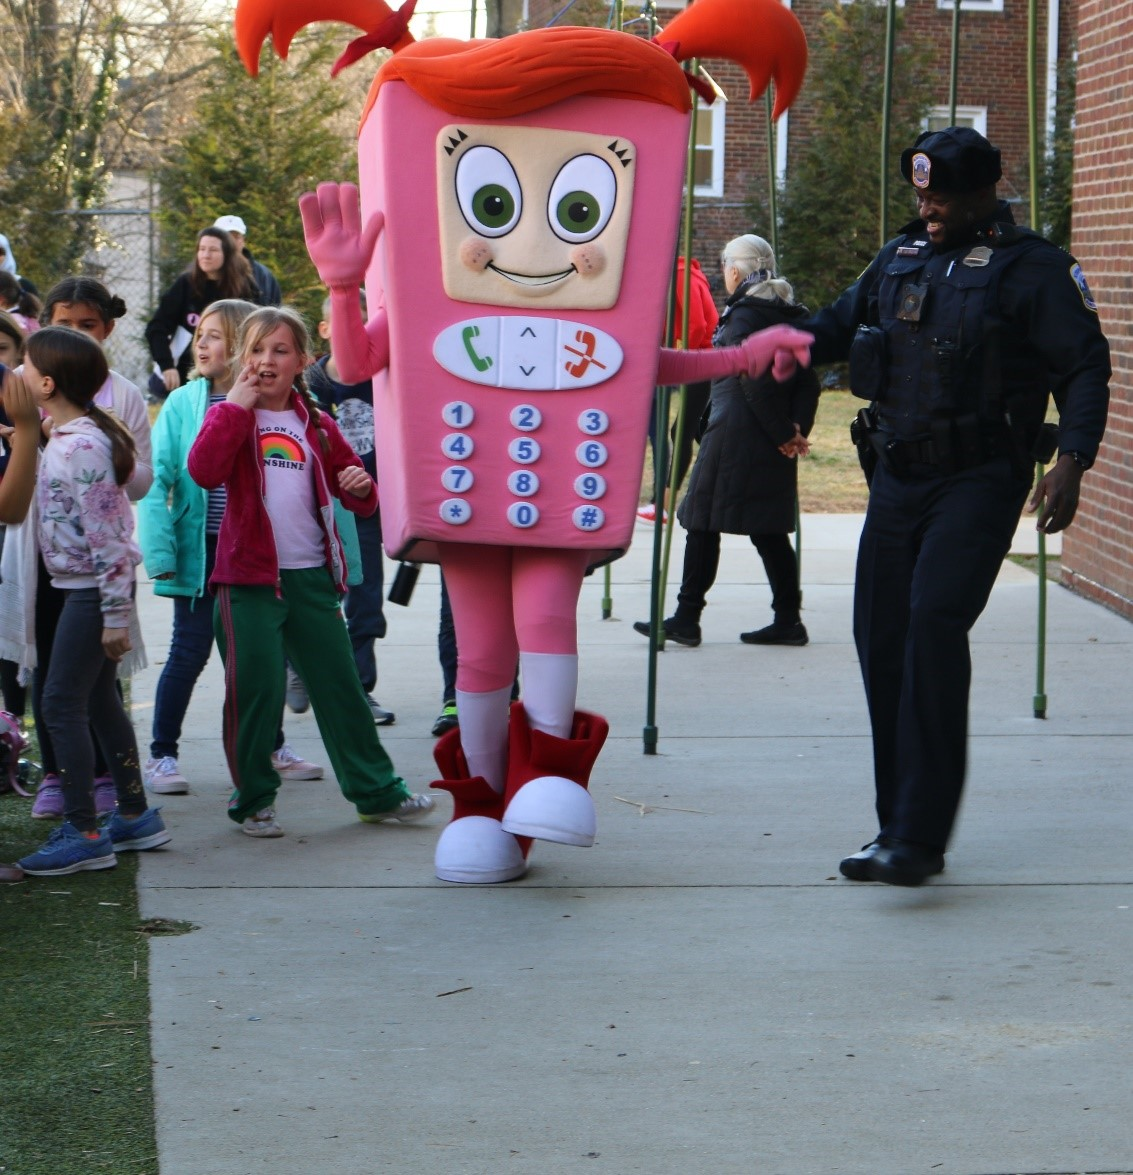 Cell Phone Sally, OUC's mascot, visits students with Officer Friendly.